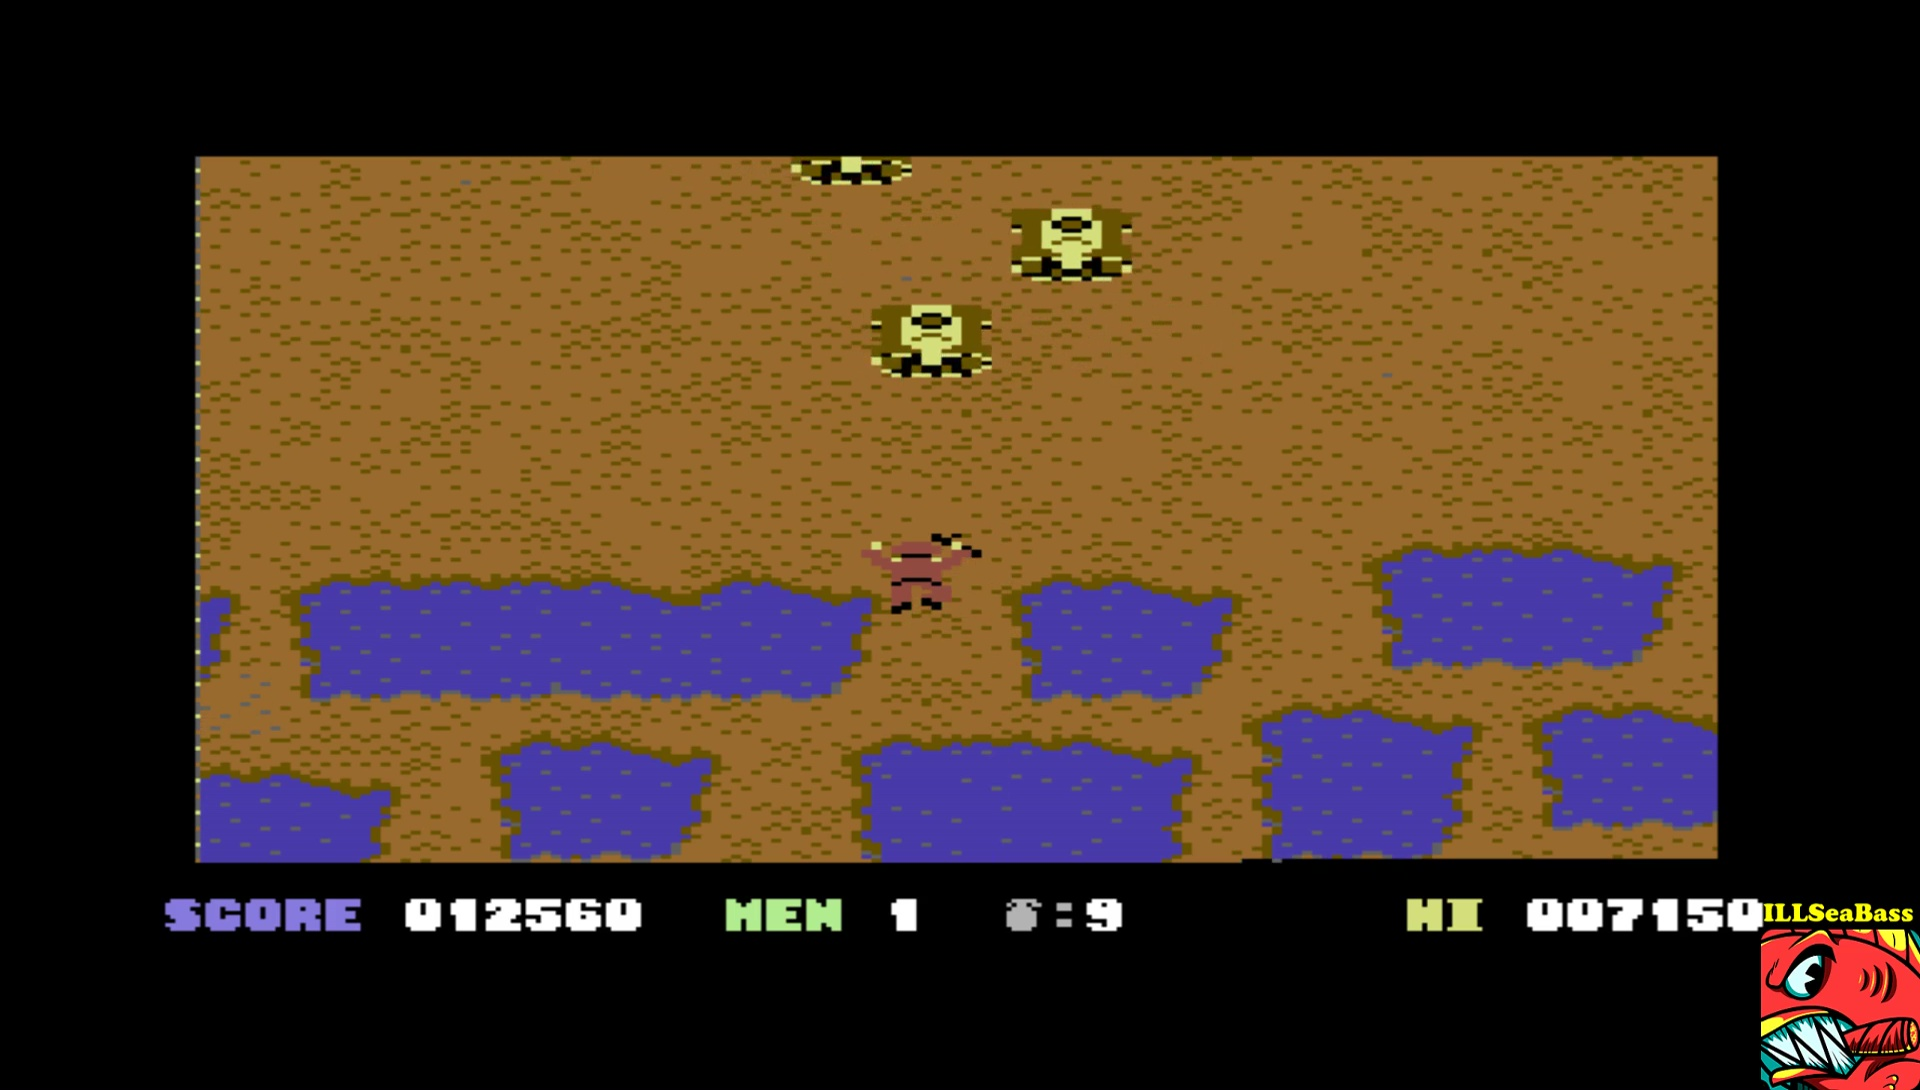 ILLSeaBass: Who Dares Wins II [Alligata] (Commodore 64 Emulated) 12,560 points on 2017-04-11 23:20:59